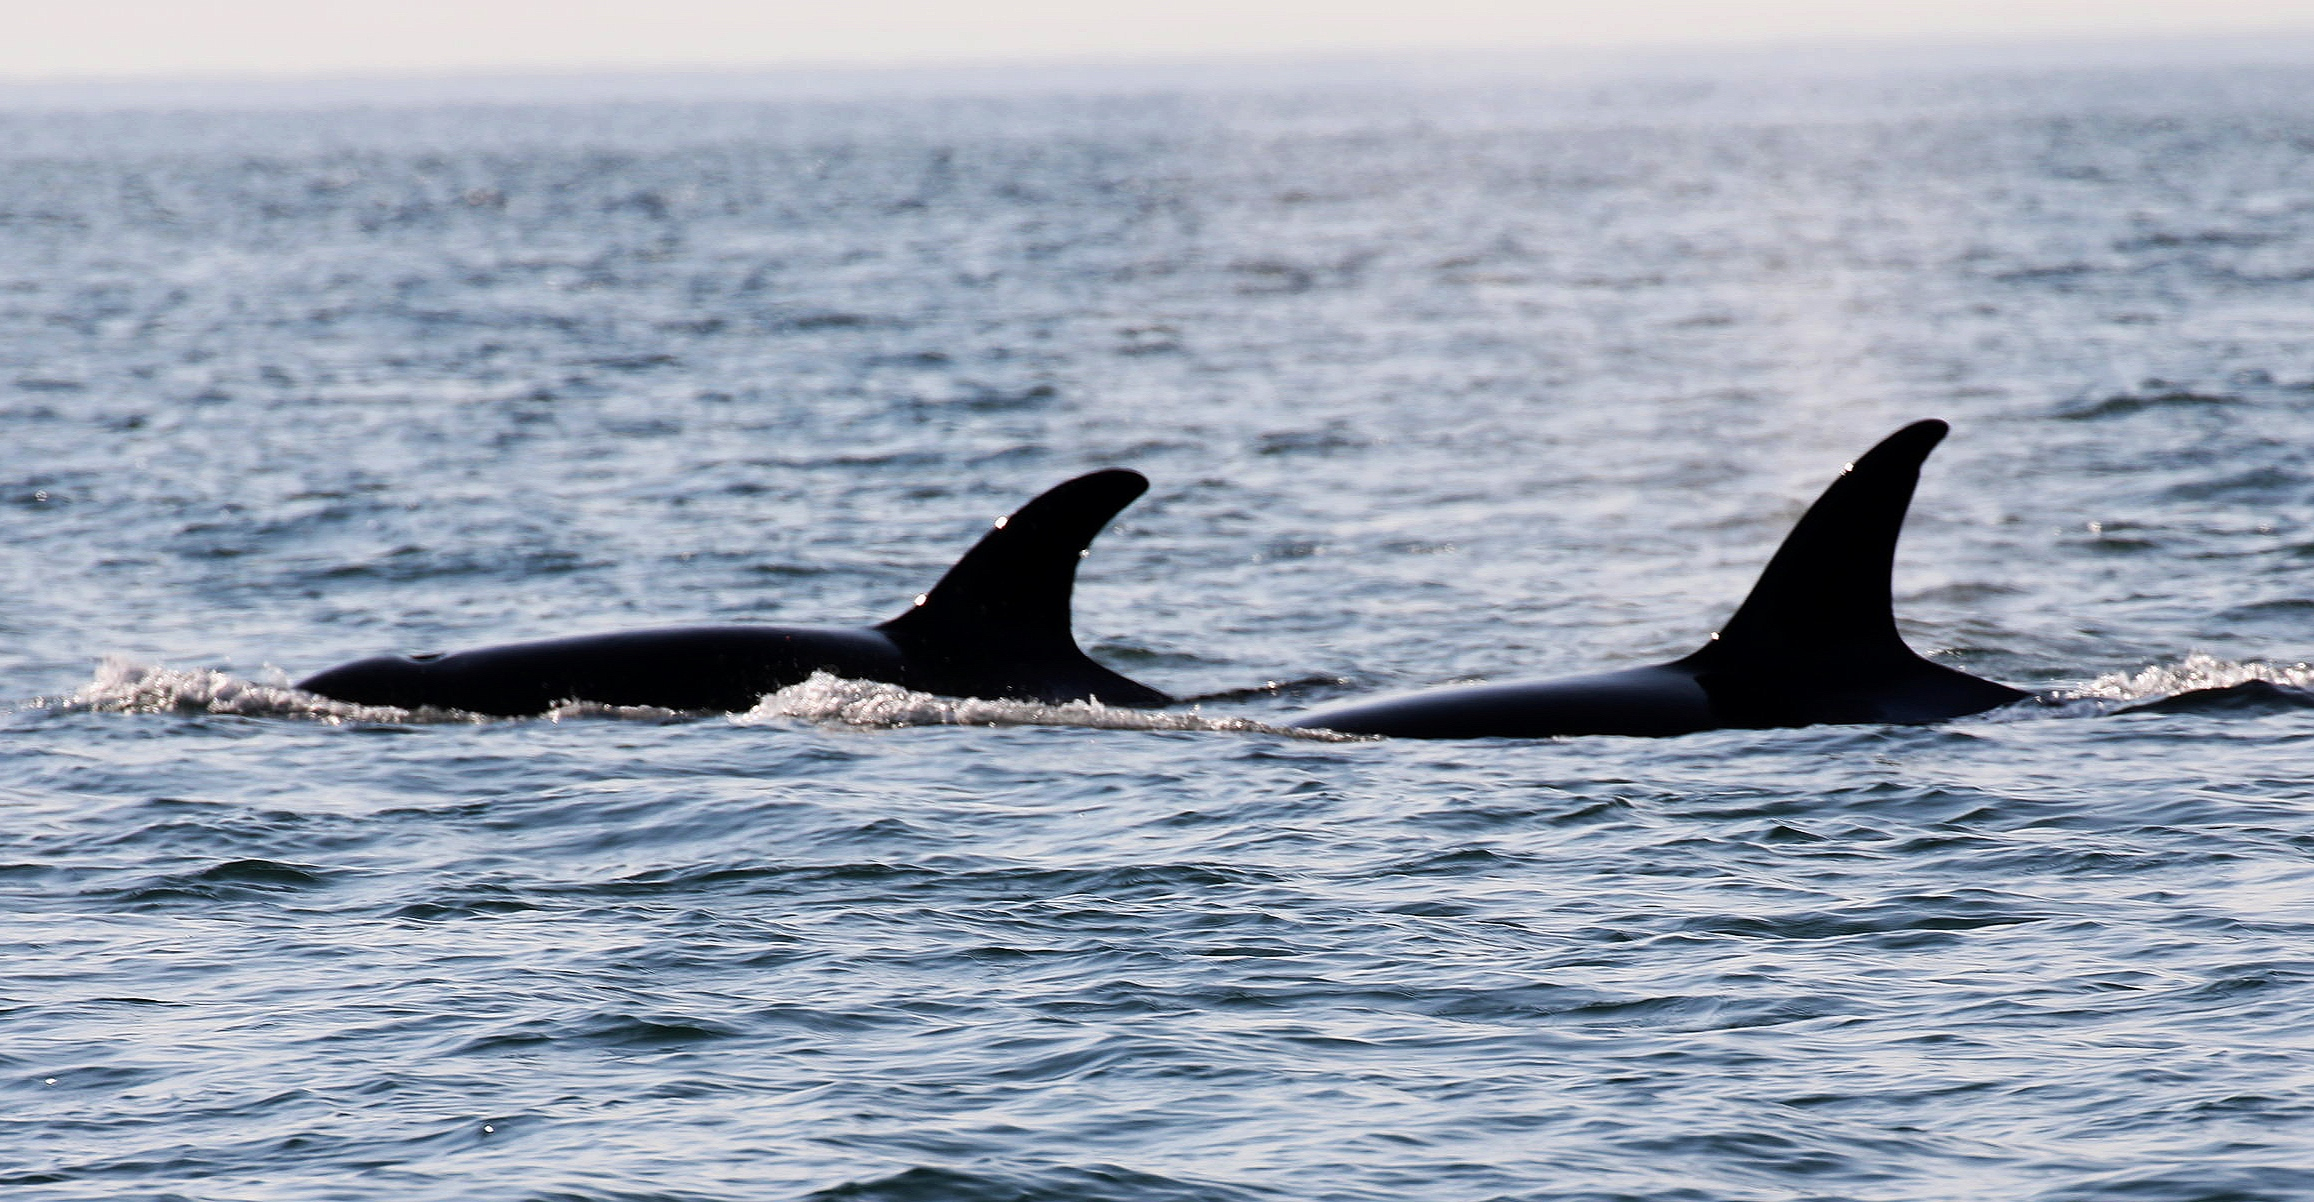 Ellifrit and her mom Fingers silhouetted in the evening sun. Photo by Ryan Uslu (3.30)